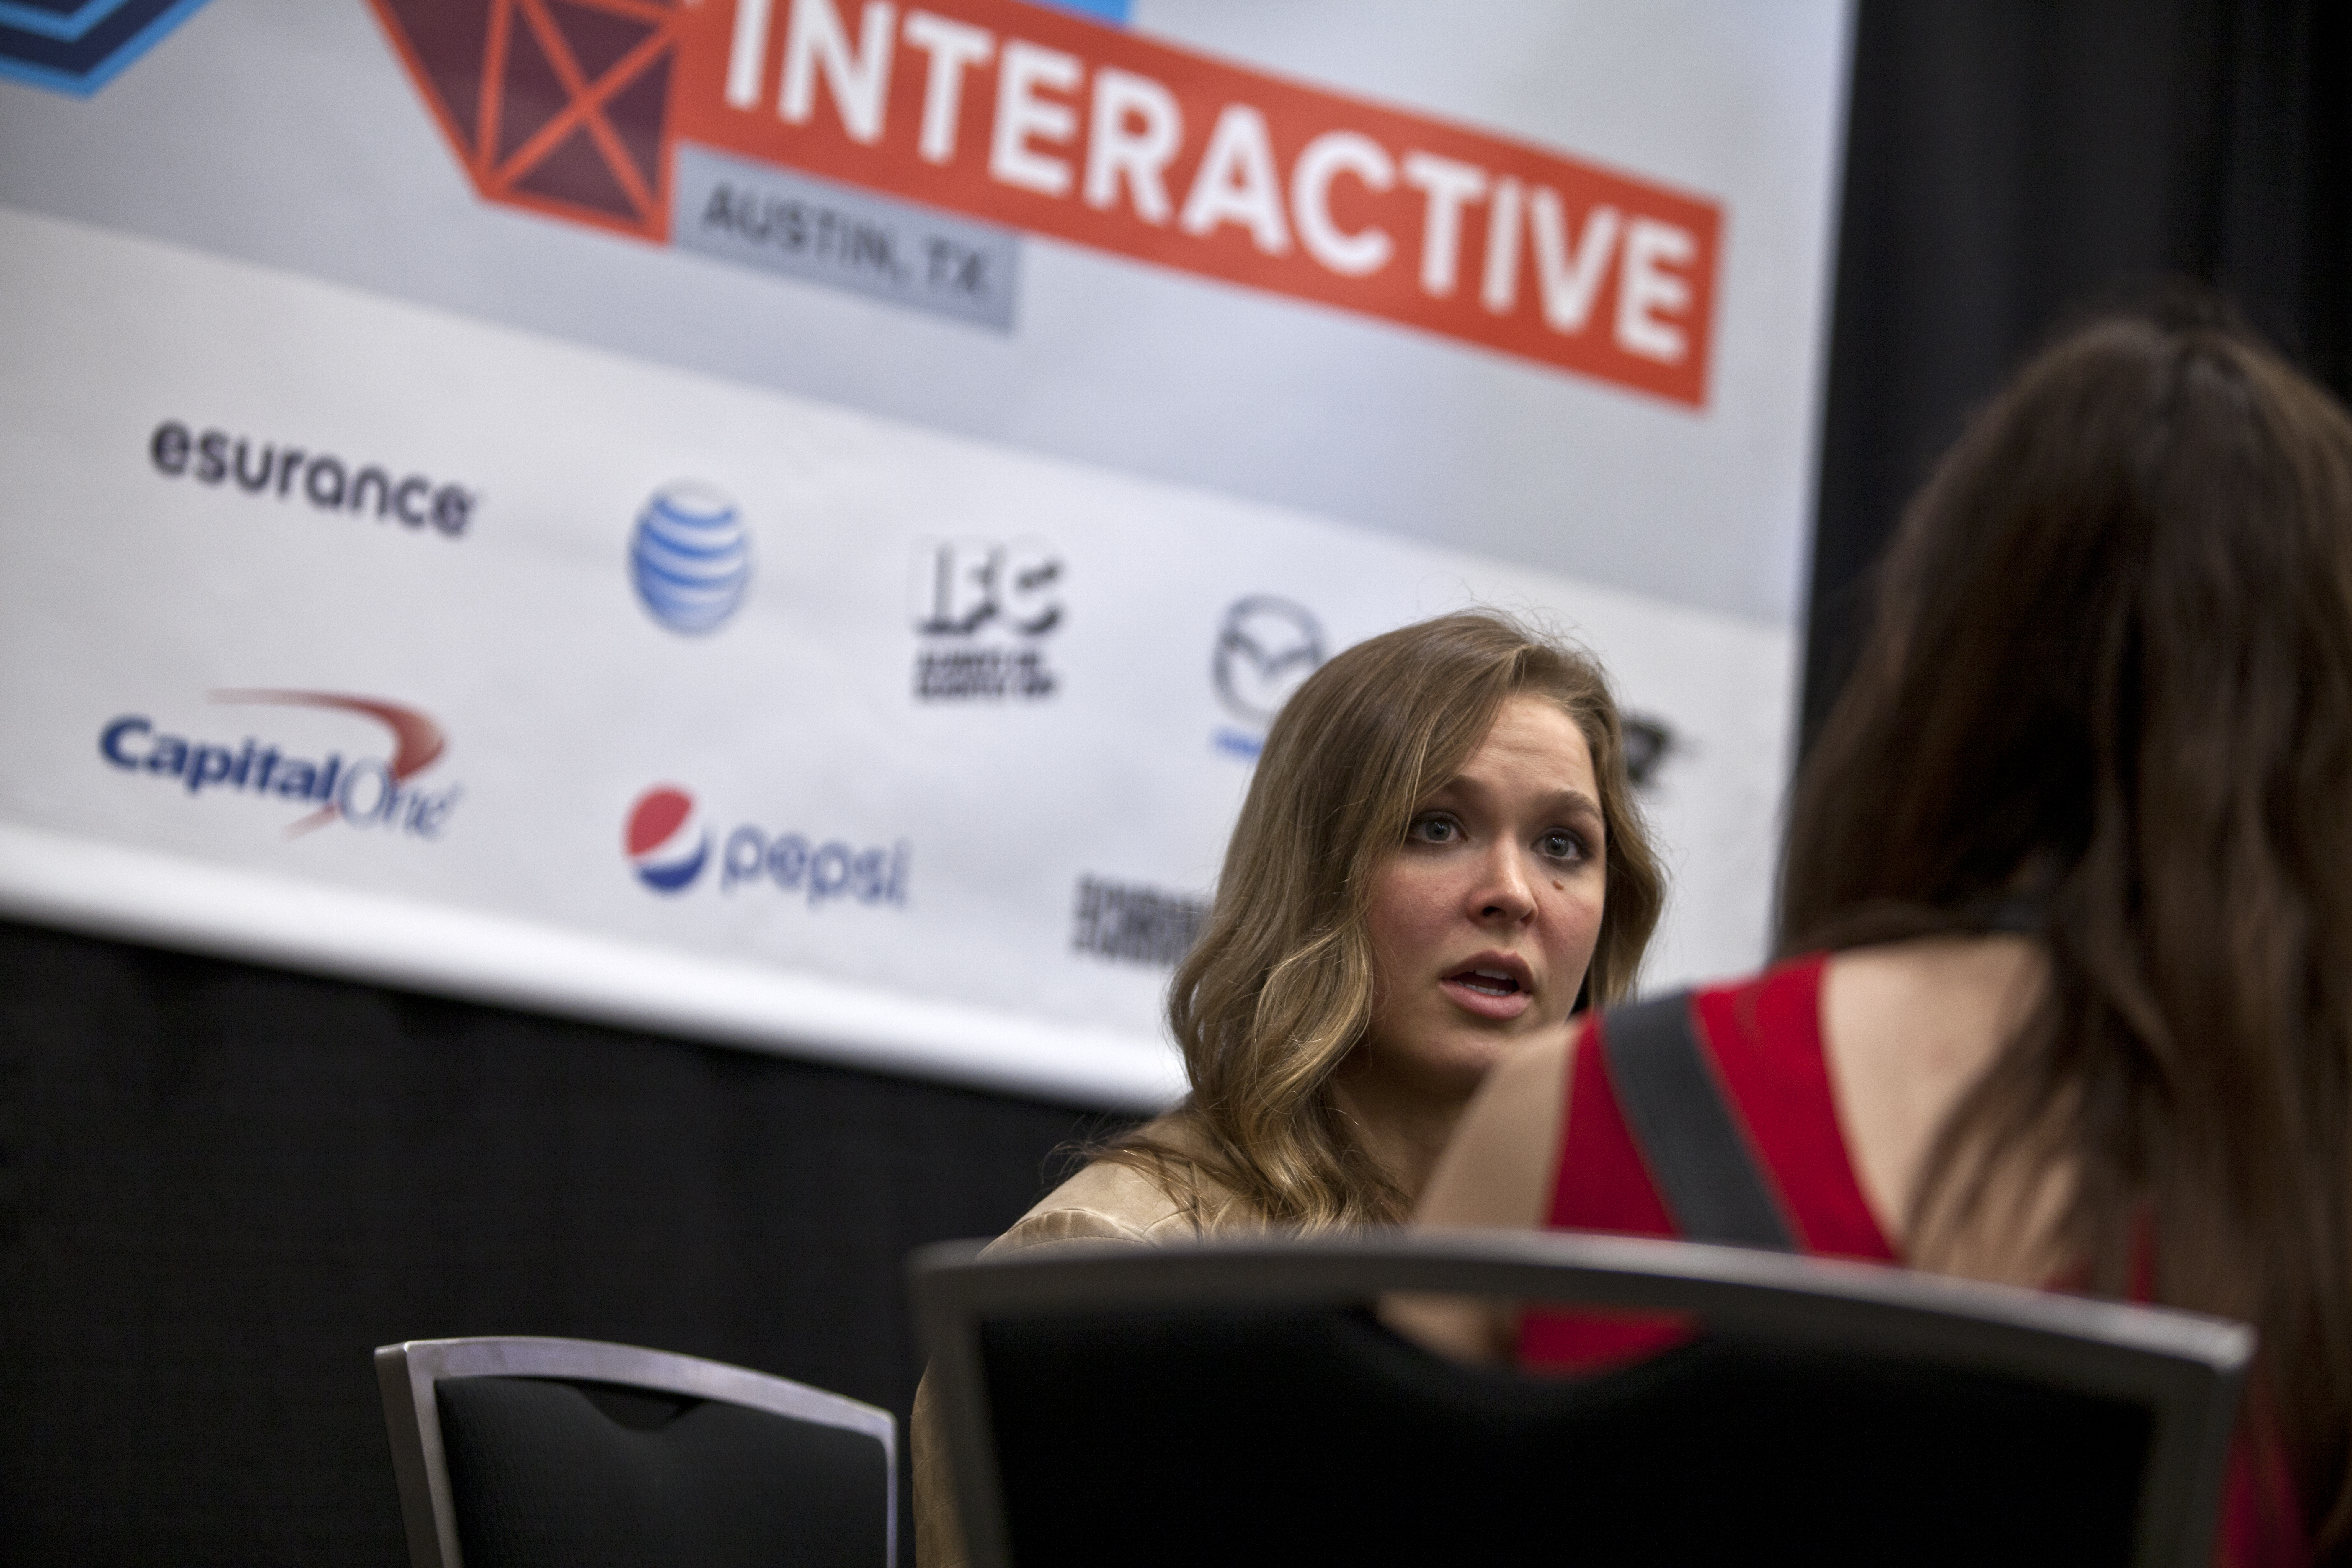 SXSW 2015 kicks it up with female MMA fighters